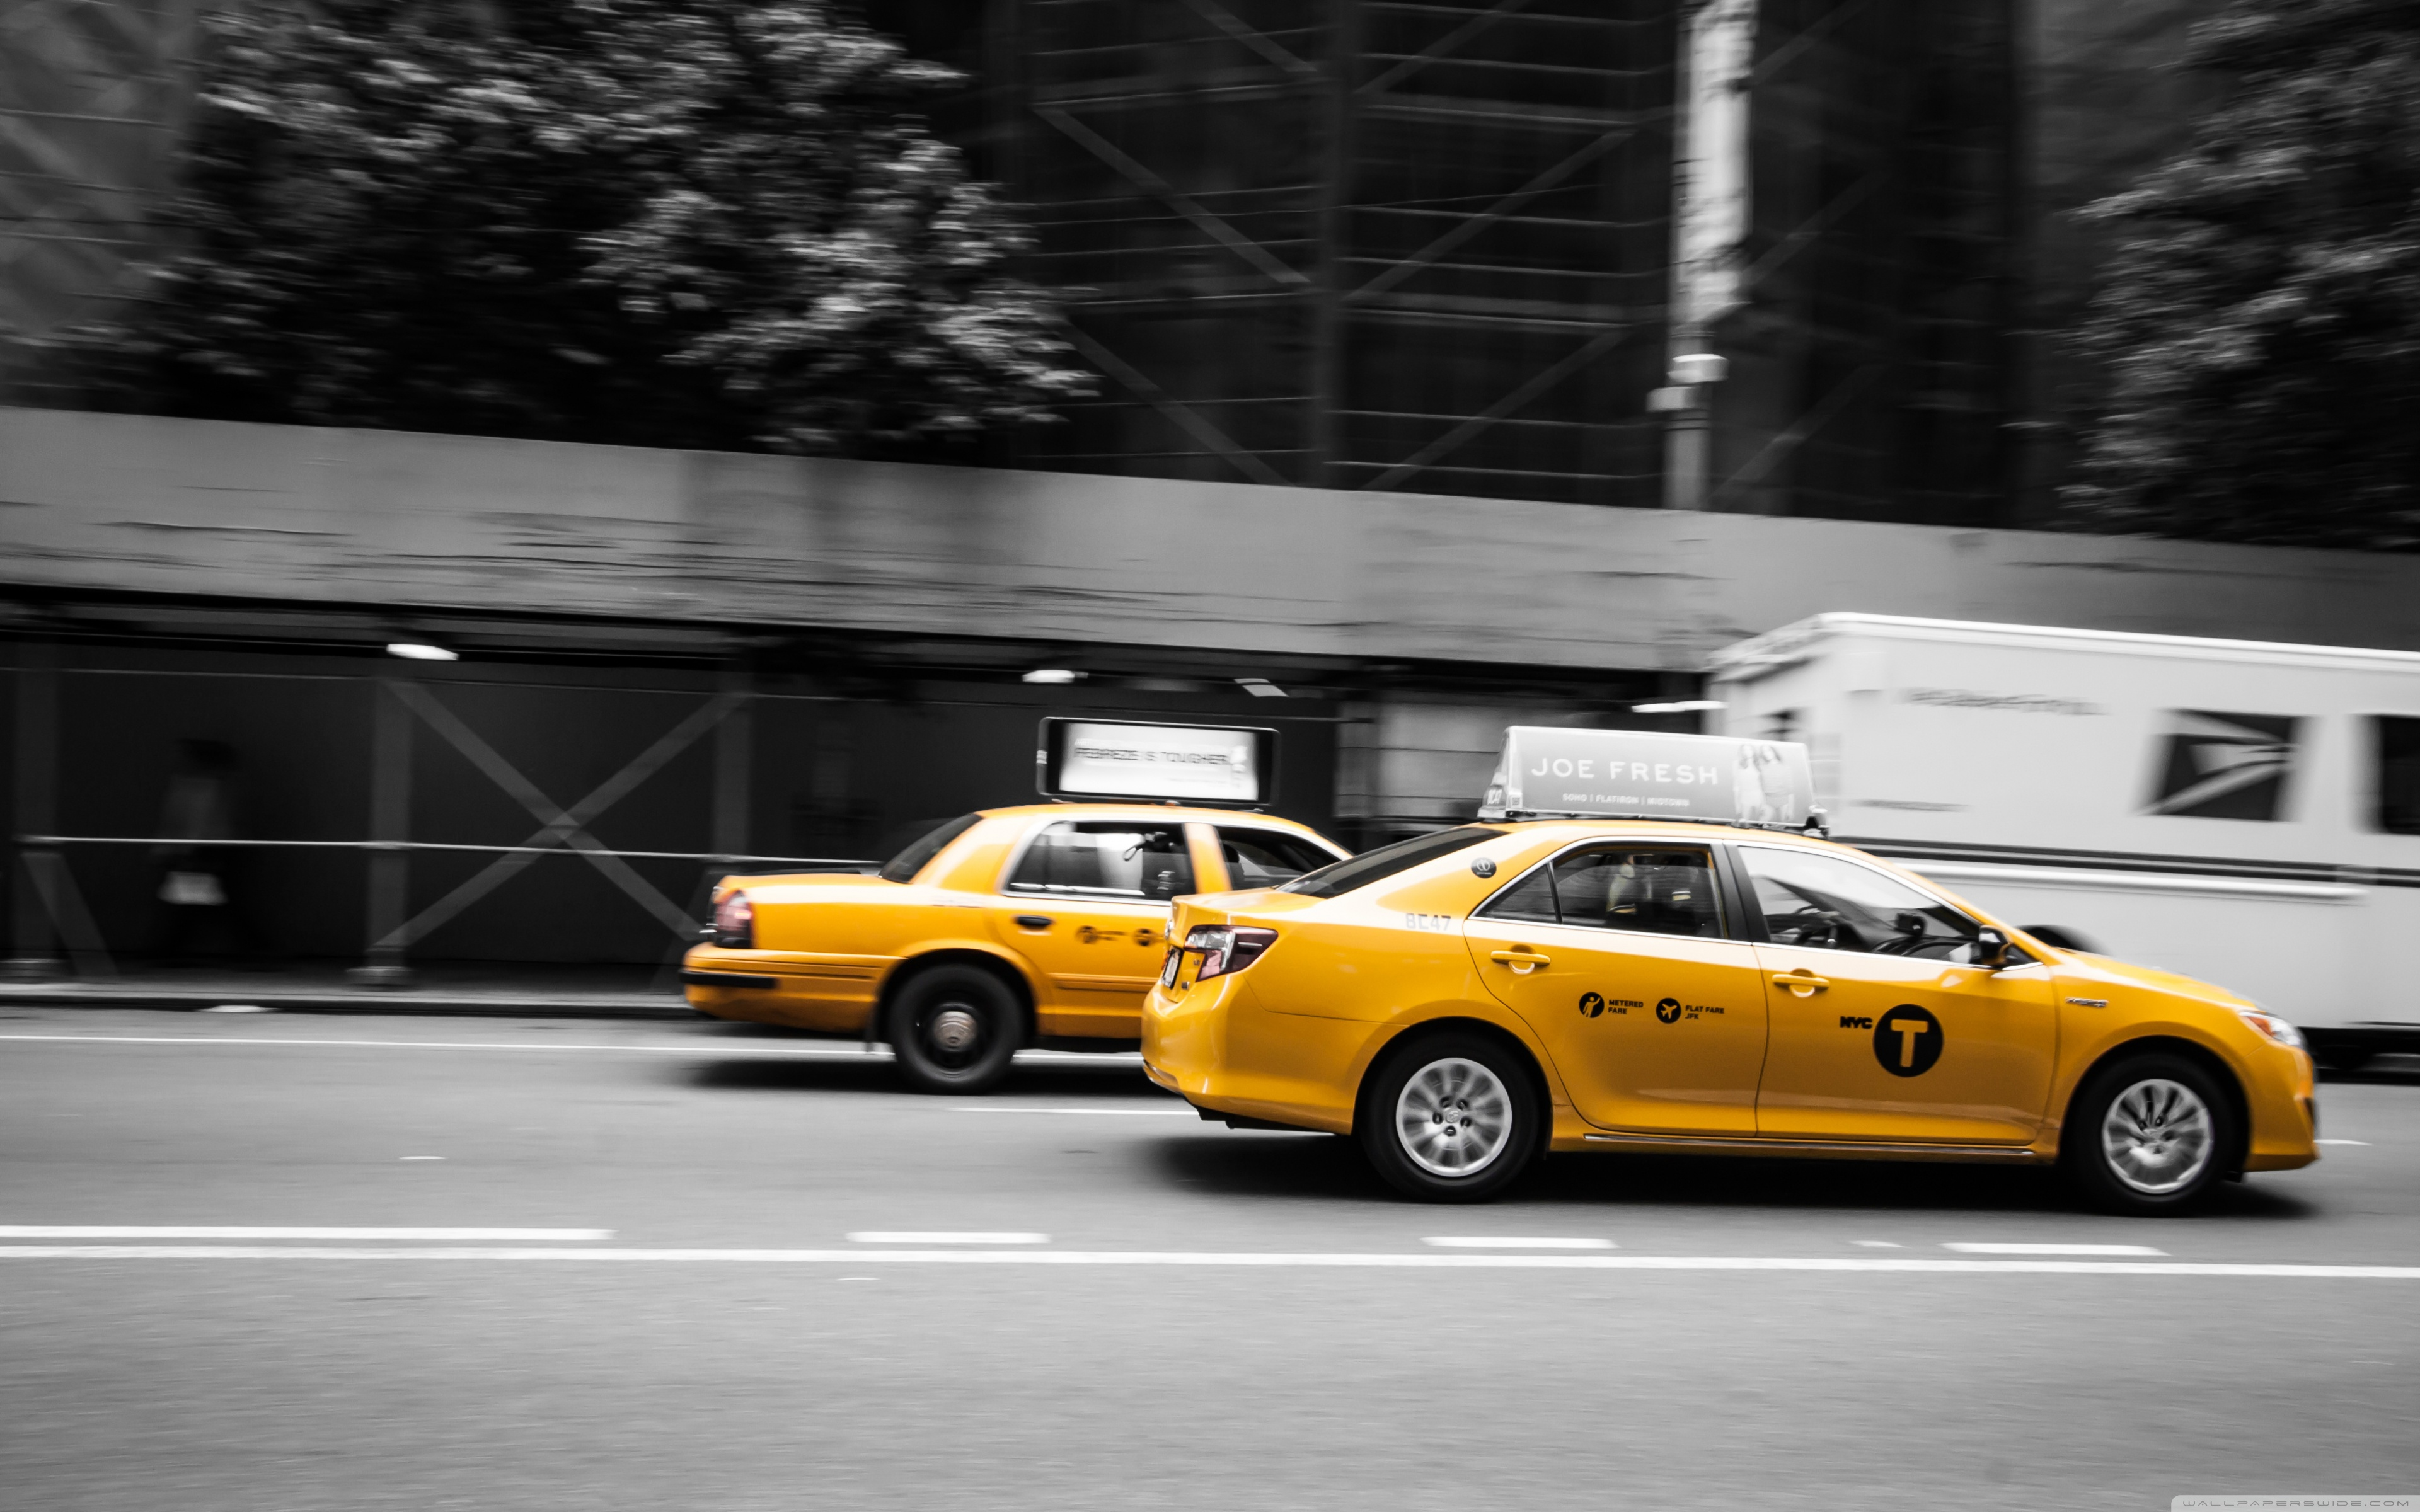 Taxi Wallpapers Top Free Taxi Backgrounds Wallpaperaccess